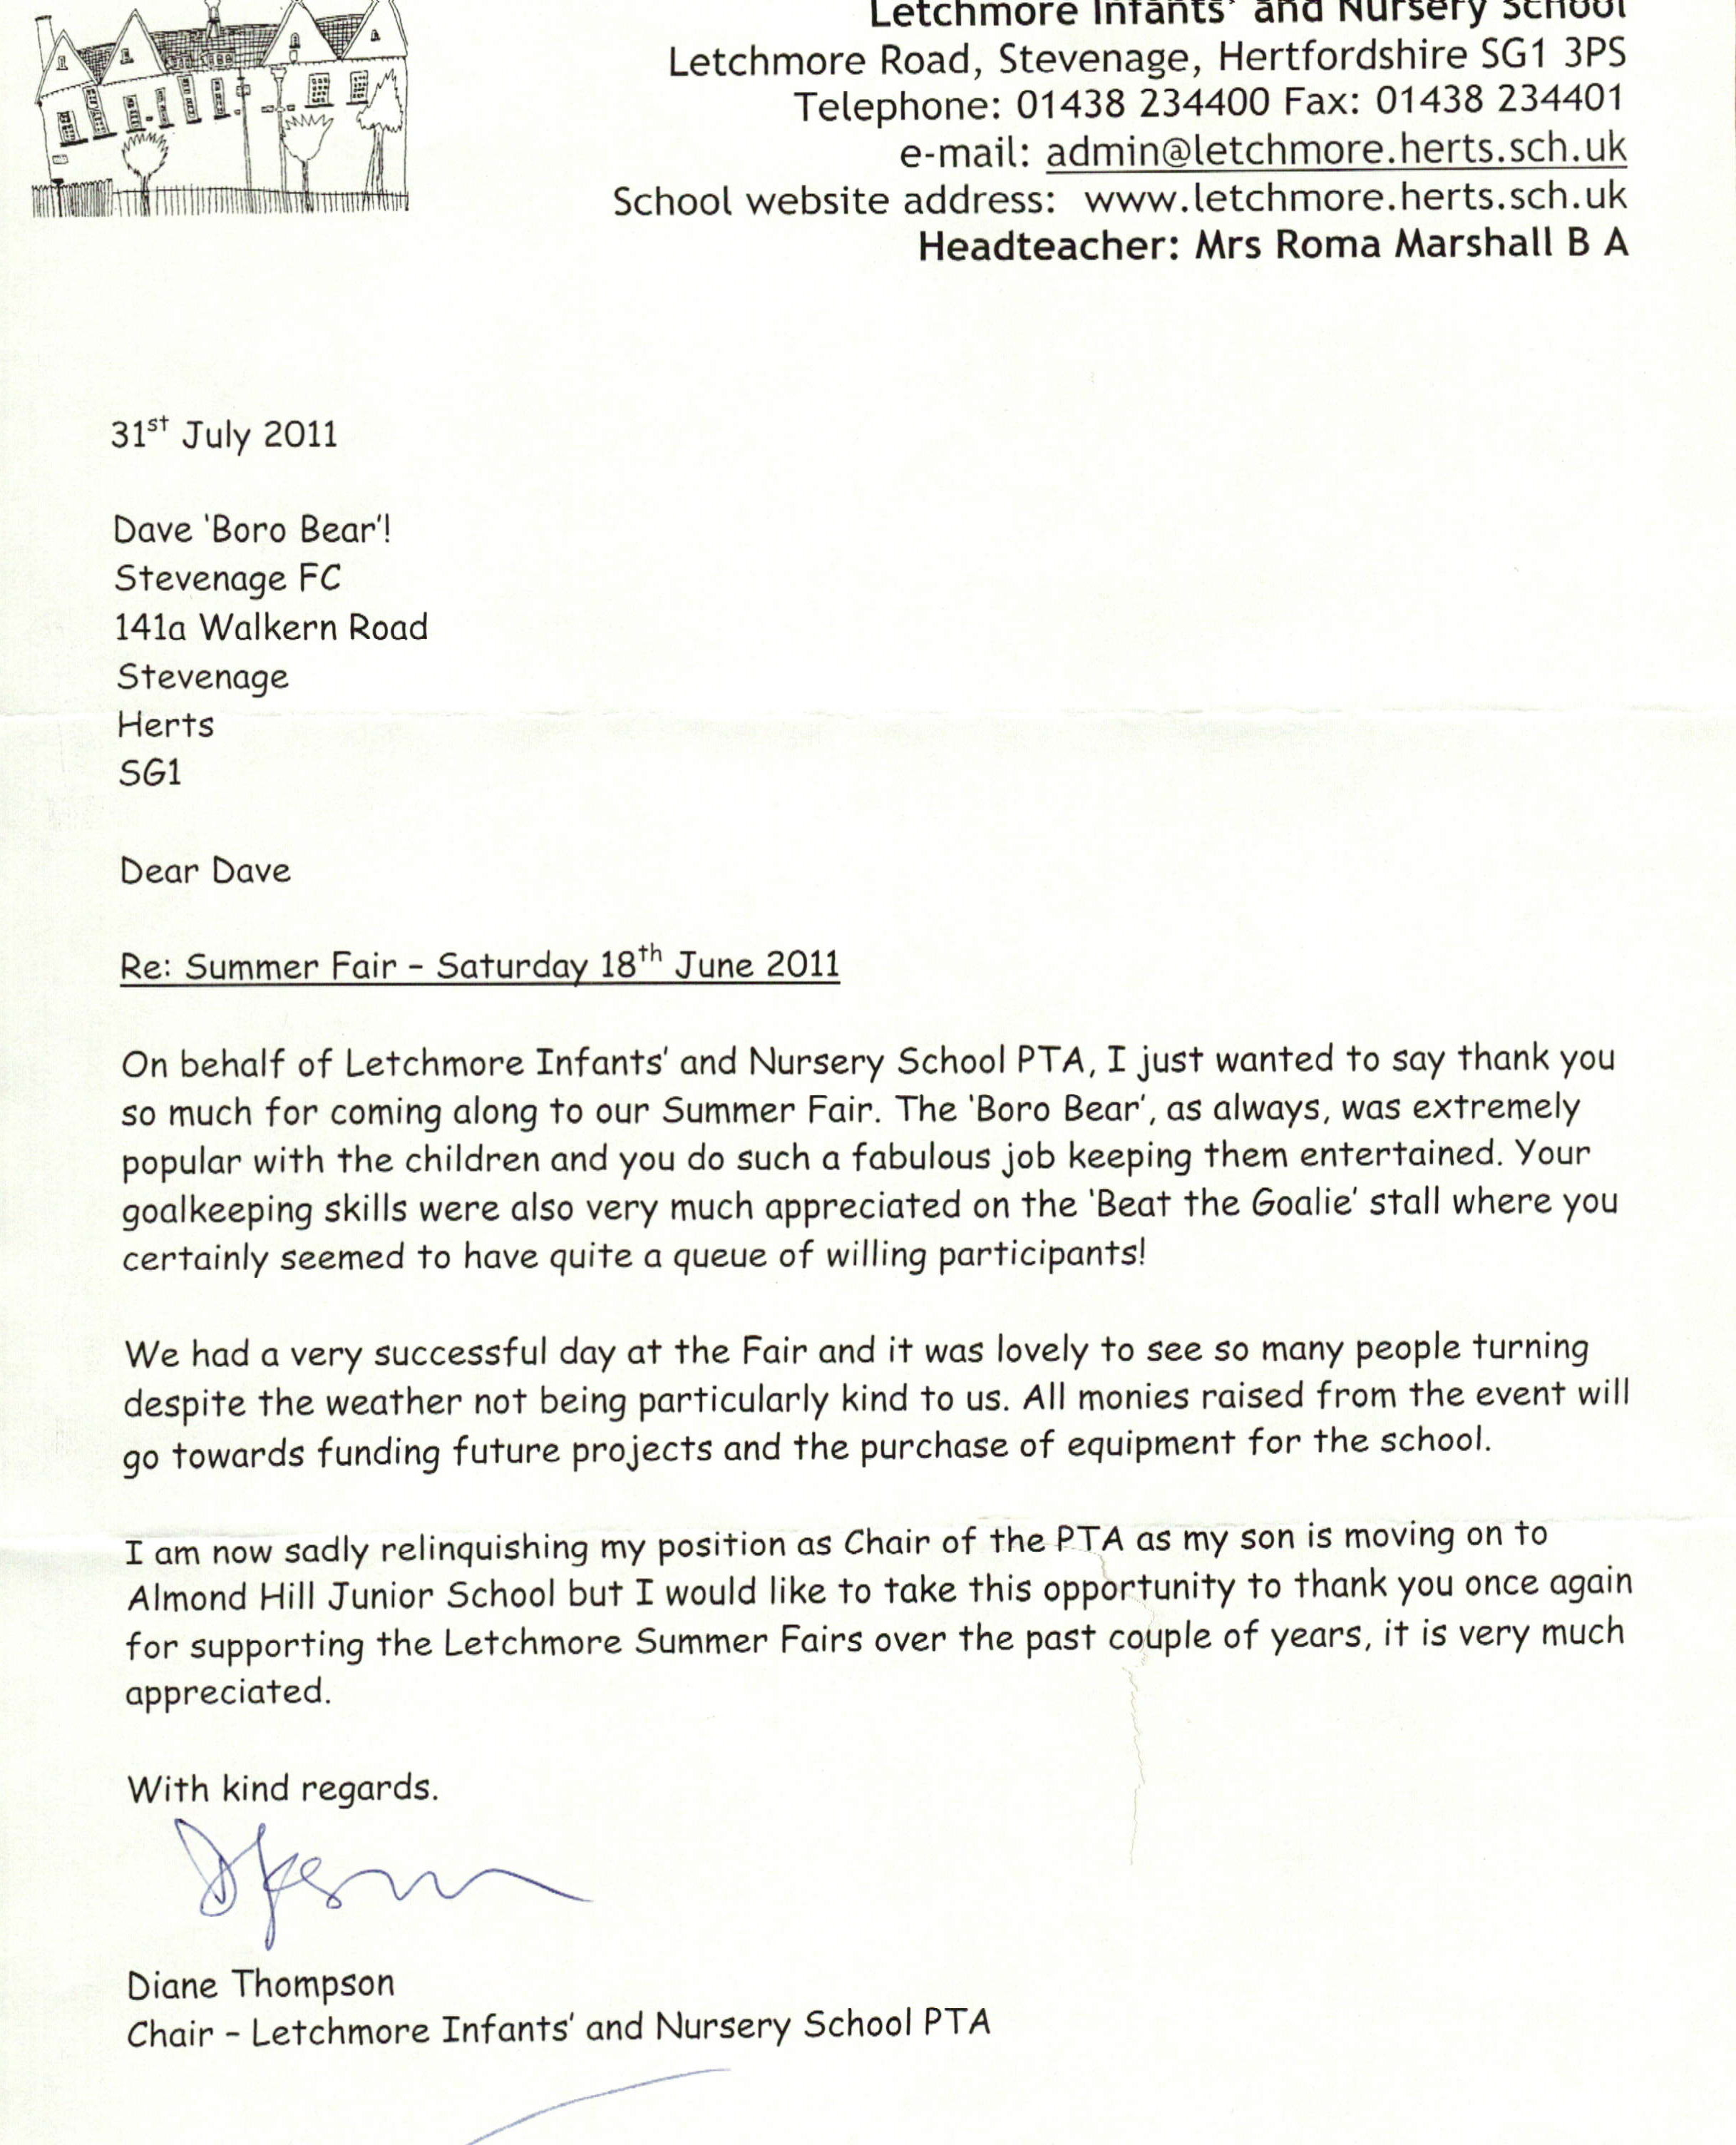 A Thank You Letter to the Boro Bear | Stevenage Football Club | Our